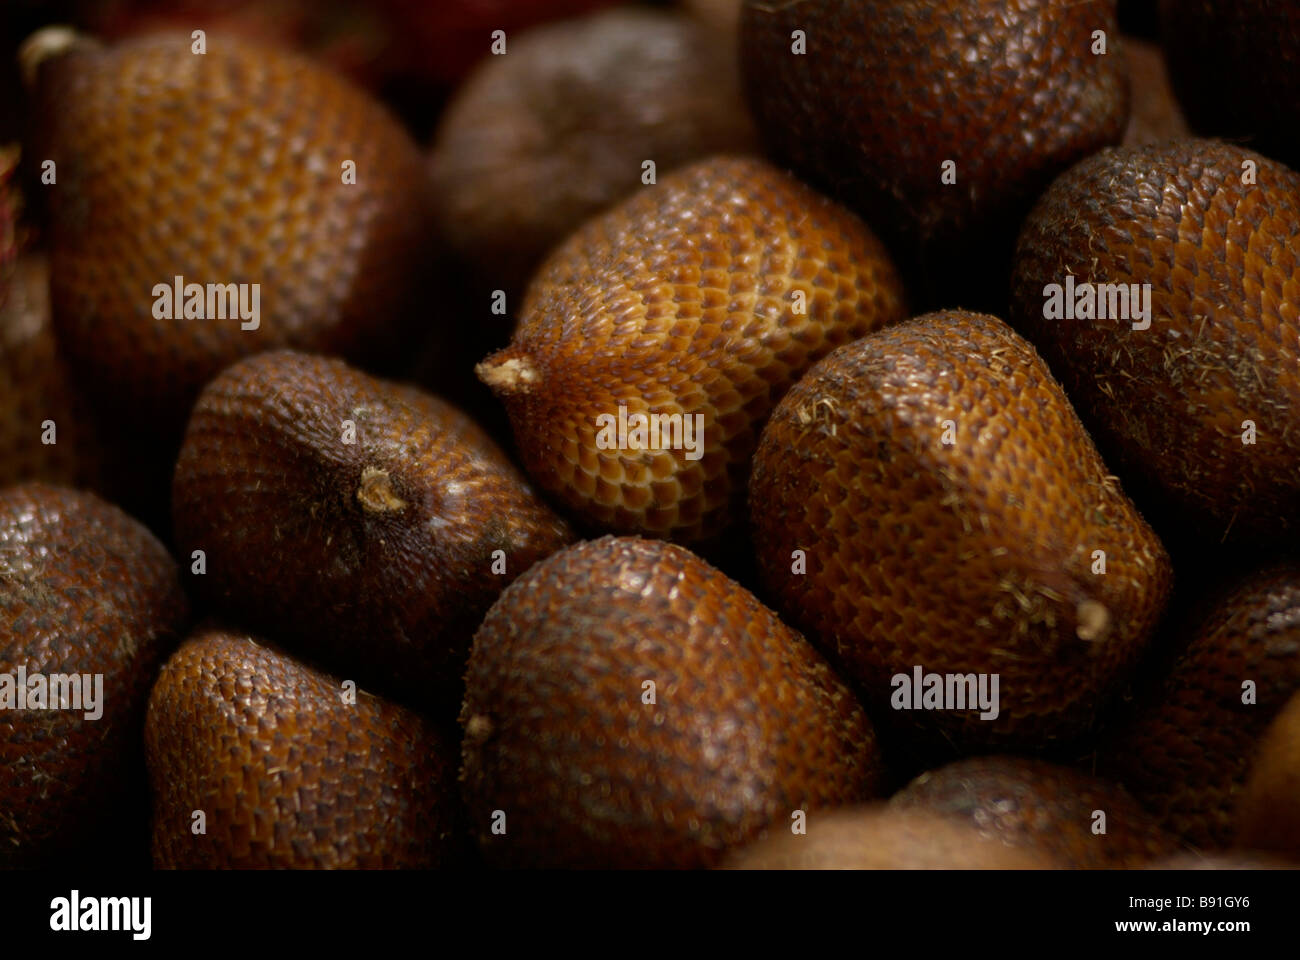 Bali Fruit Stock Photos Bali Fruit Stock Images Alamy